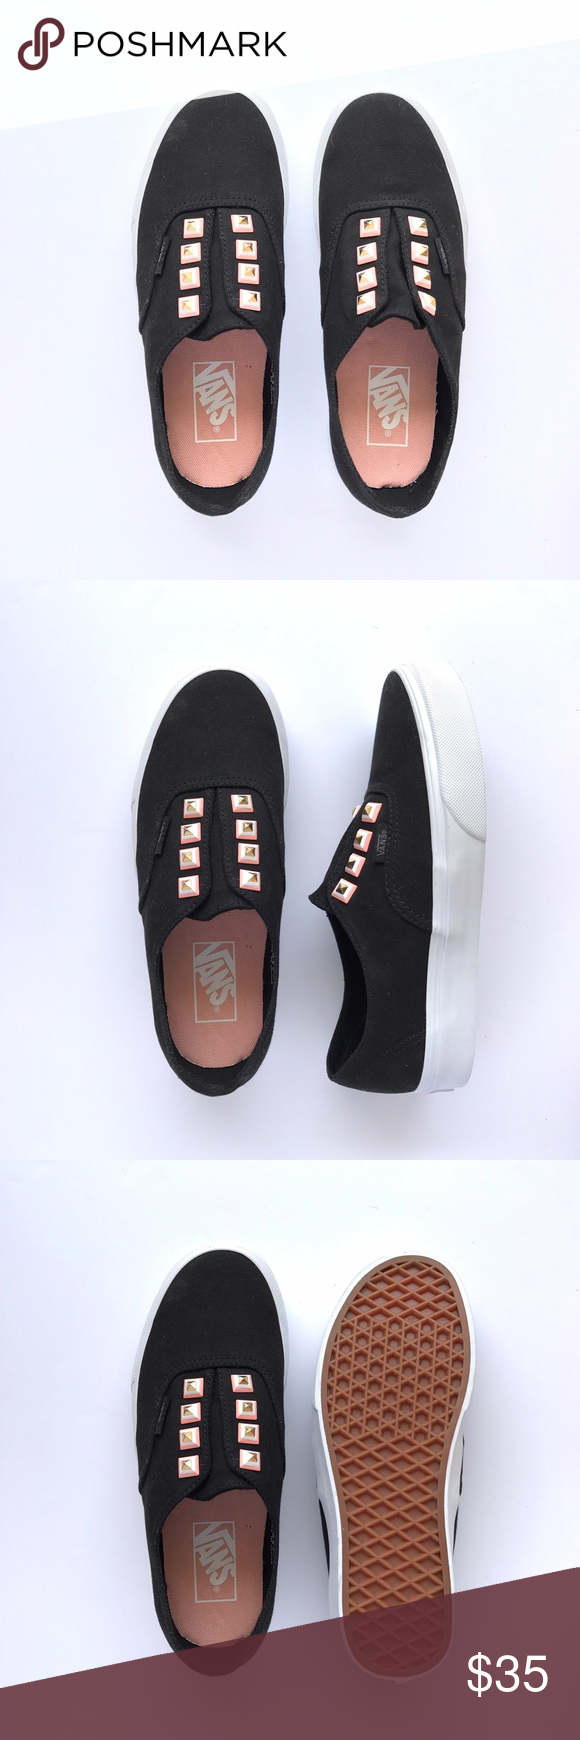 New Three Toned Studs Authentic Never been worn, black uppers, true white sole with tri-color pyramid studs. W/O box. Women's size 7 / Men's size 5.5 Vans Shoes Sneakers